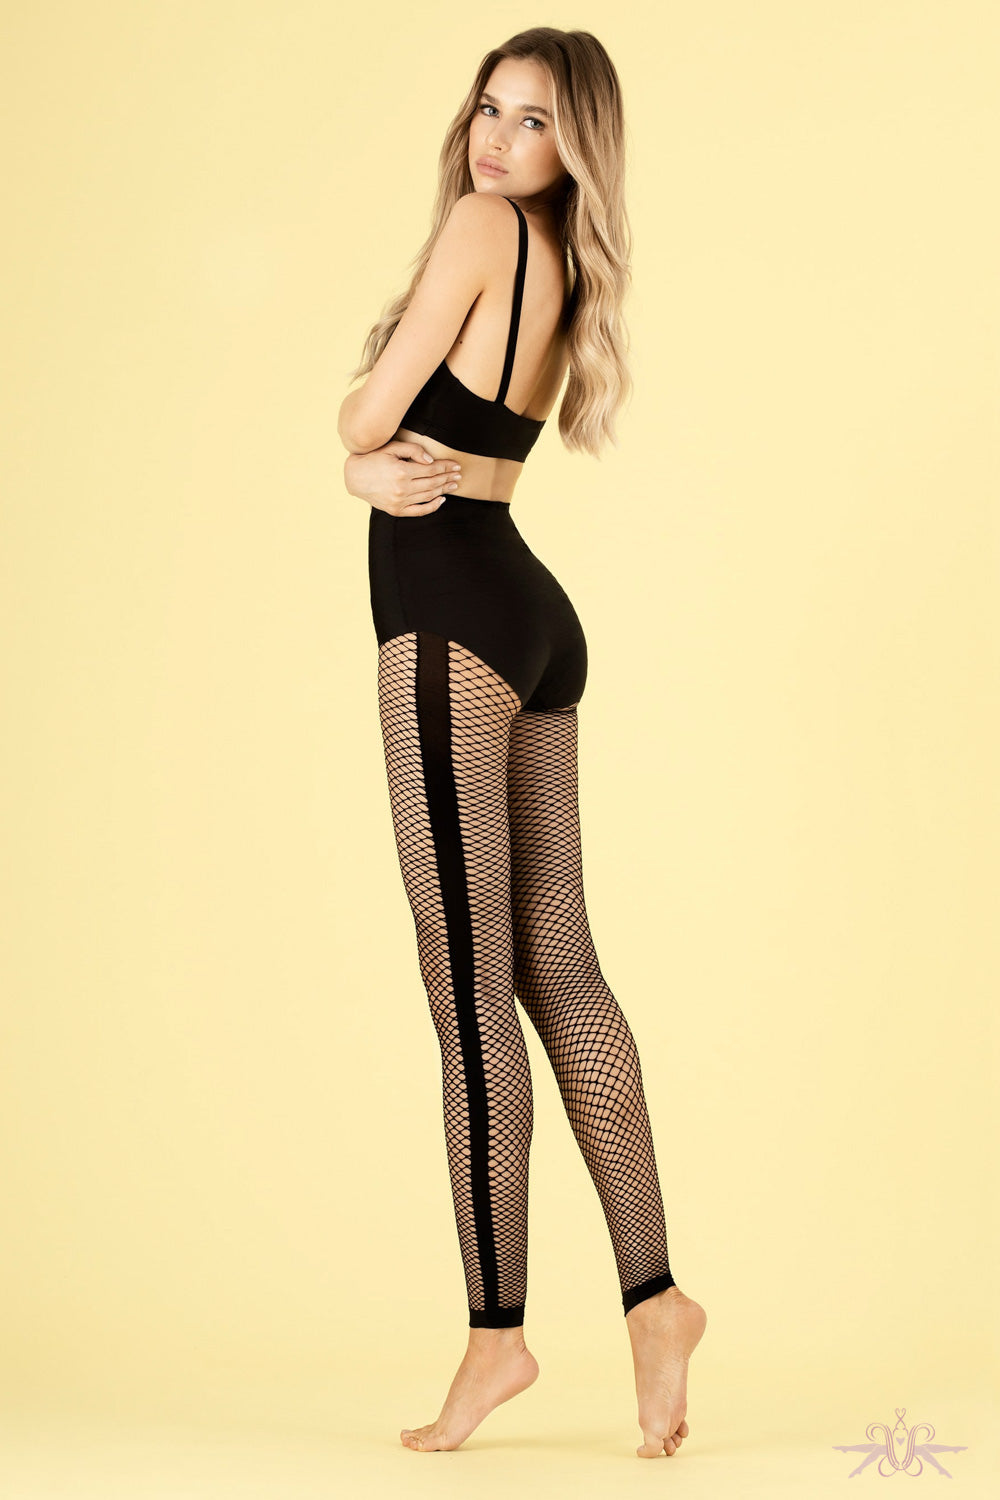 Fiore Blockbuster Fishnet Leggings